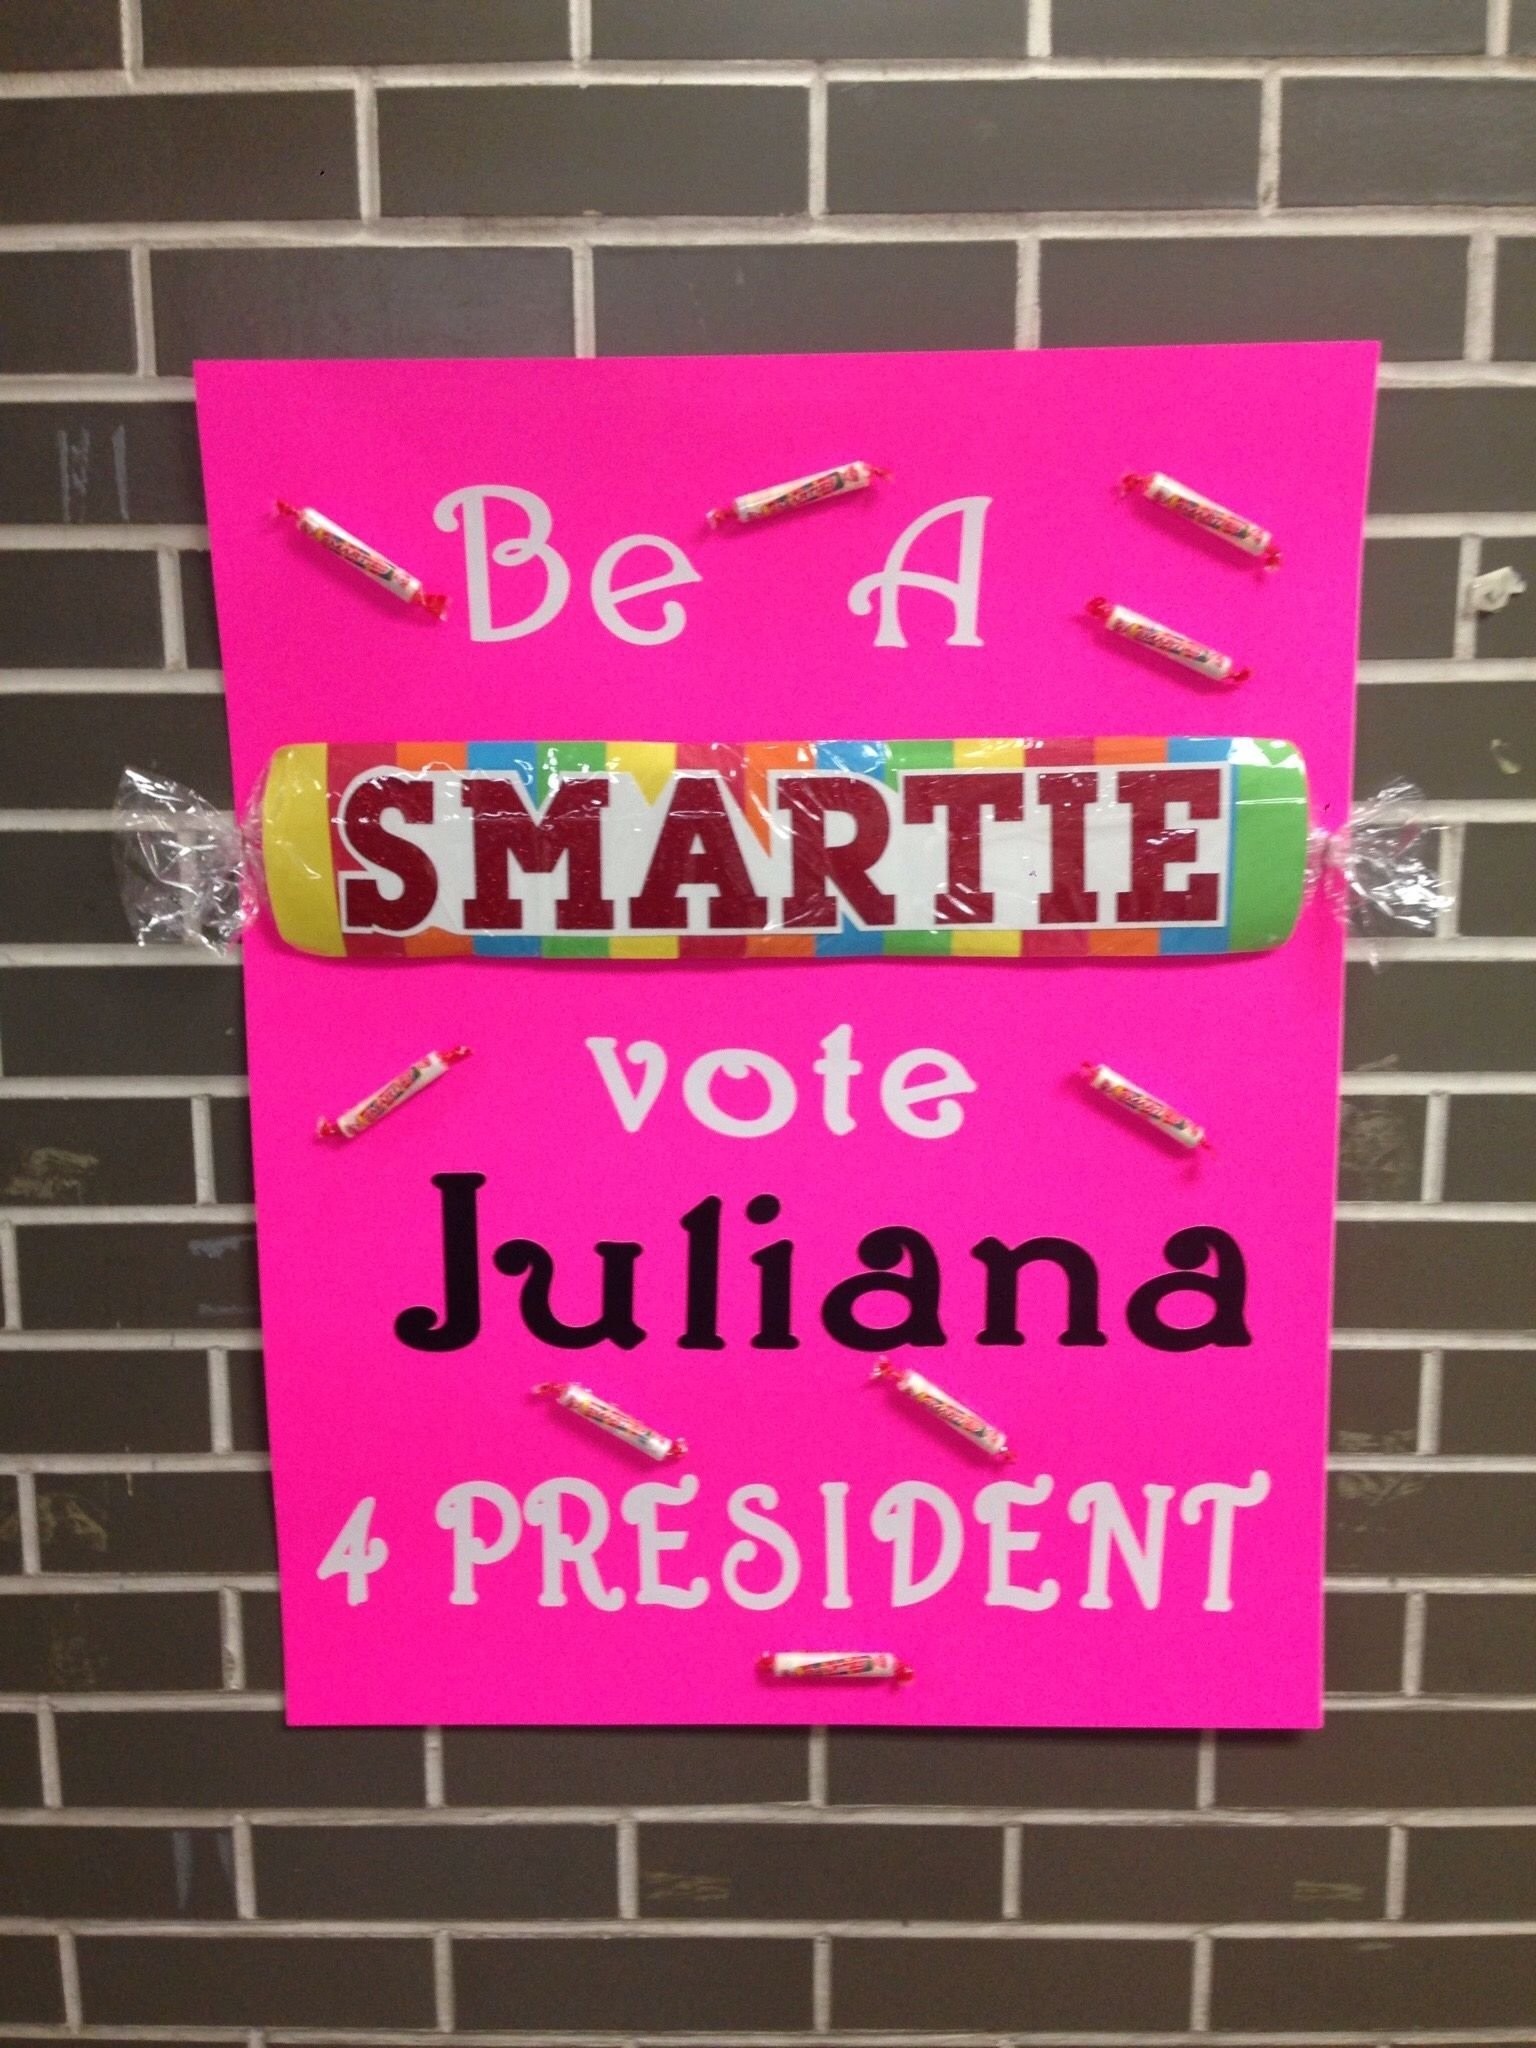 10 Fabulous Student Council Ideas For Elementary student council election poster juliana pinterest students 9 2021